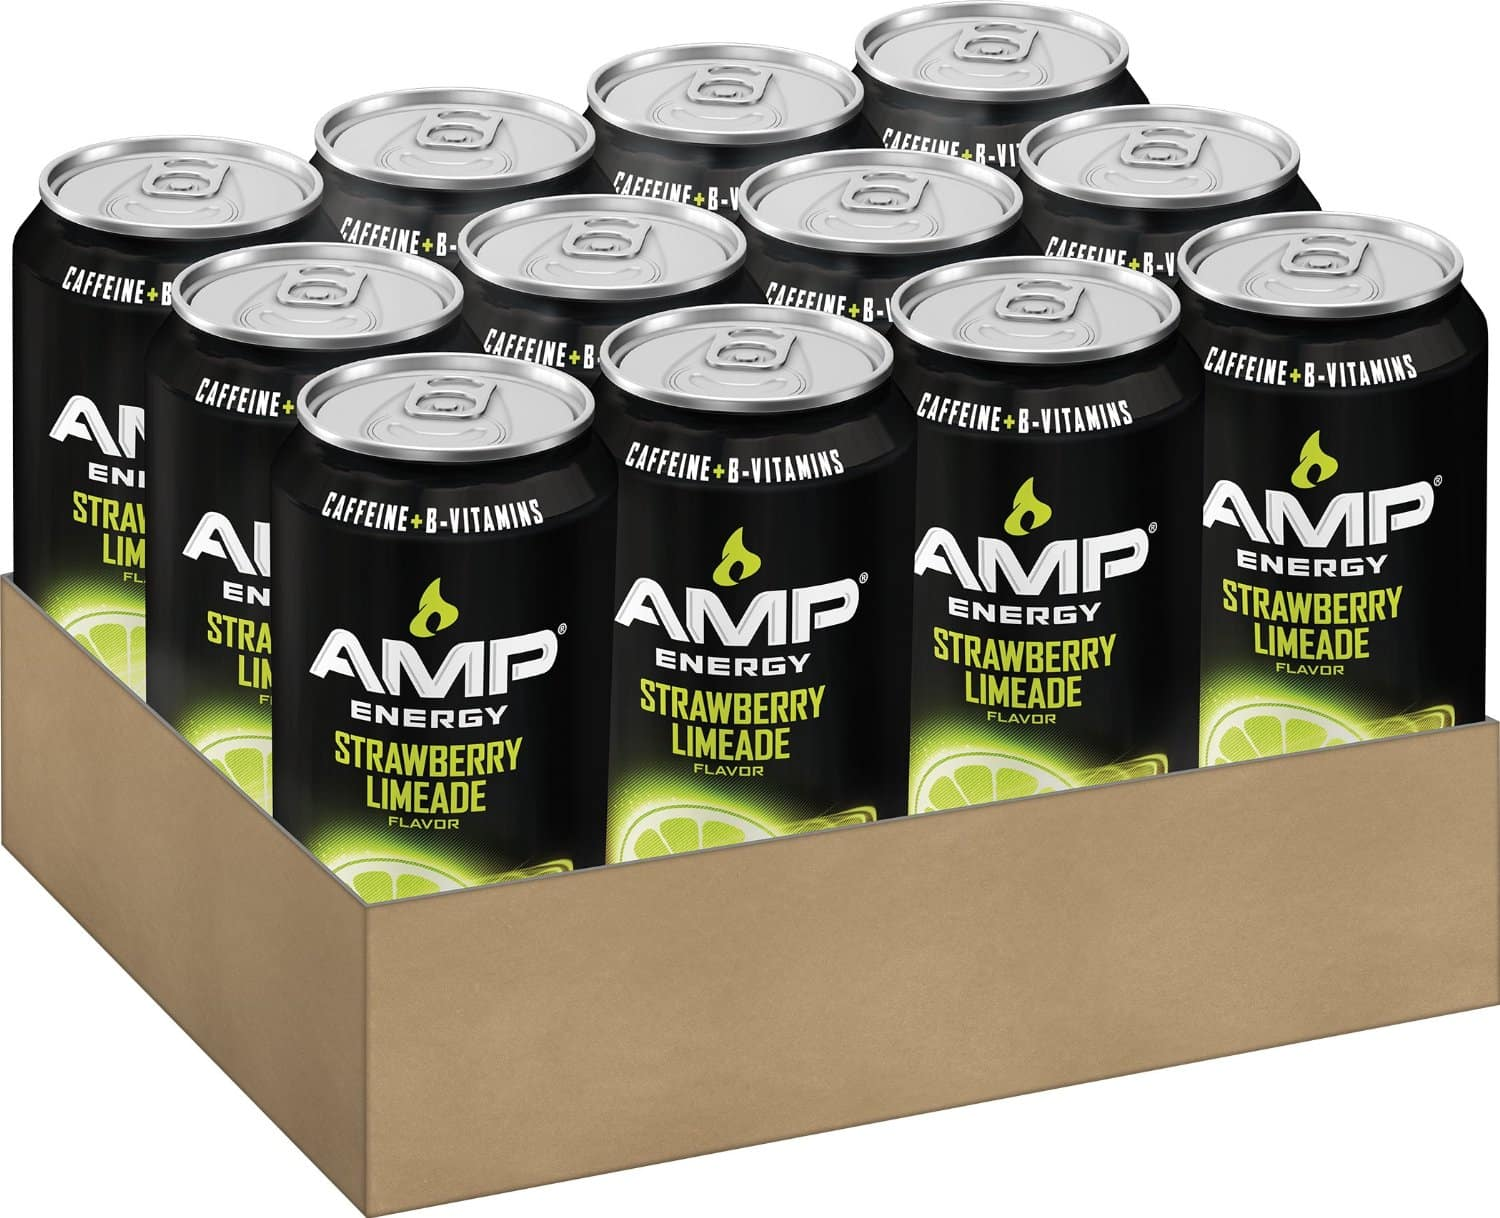 Amazon - AMP ENERGY, Strawberry Limeade, Caffeine, B Vitamins, 16 Ounce Cans (12 Count) - $9.60 (5% S&S) or $8.40 (15% S&S)